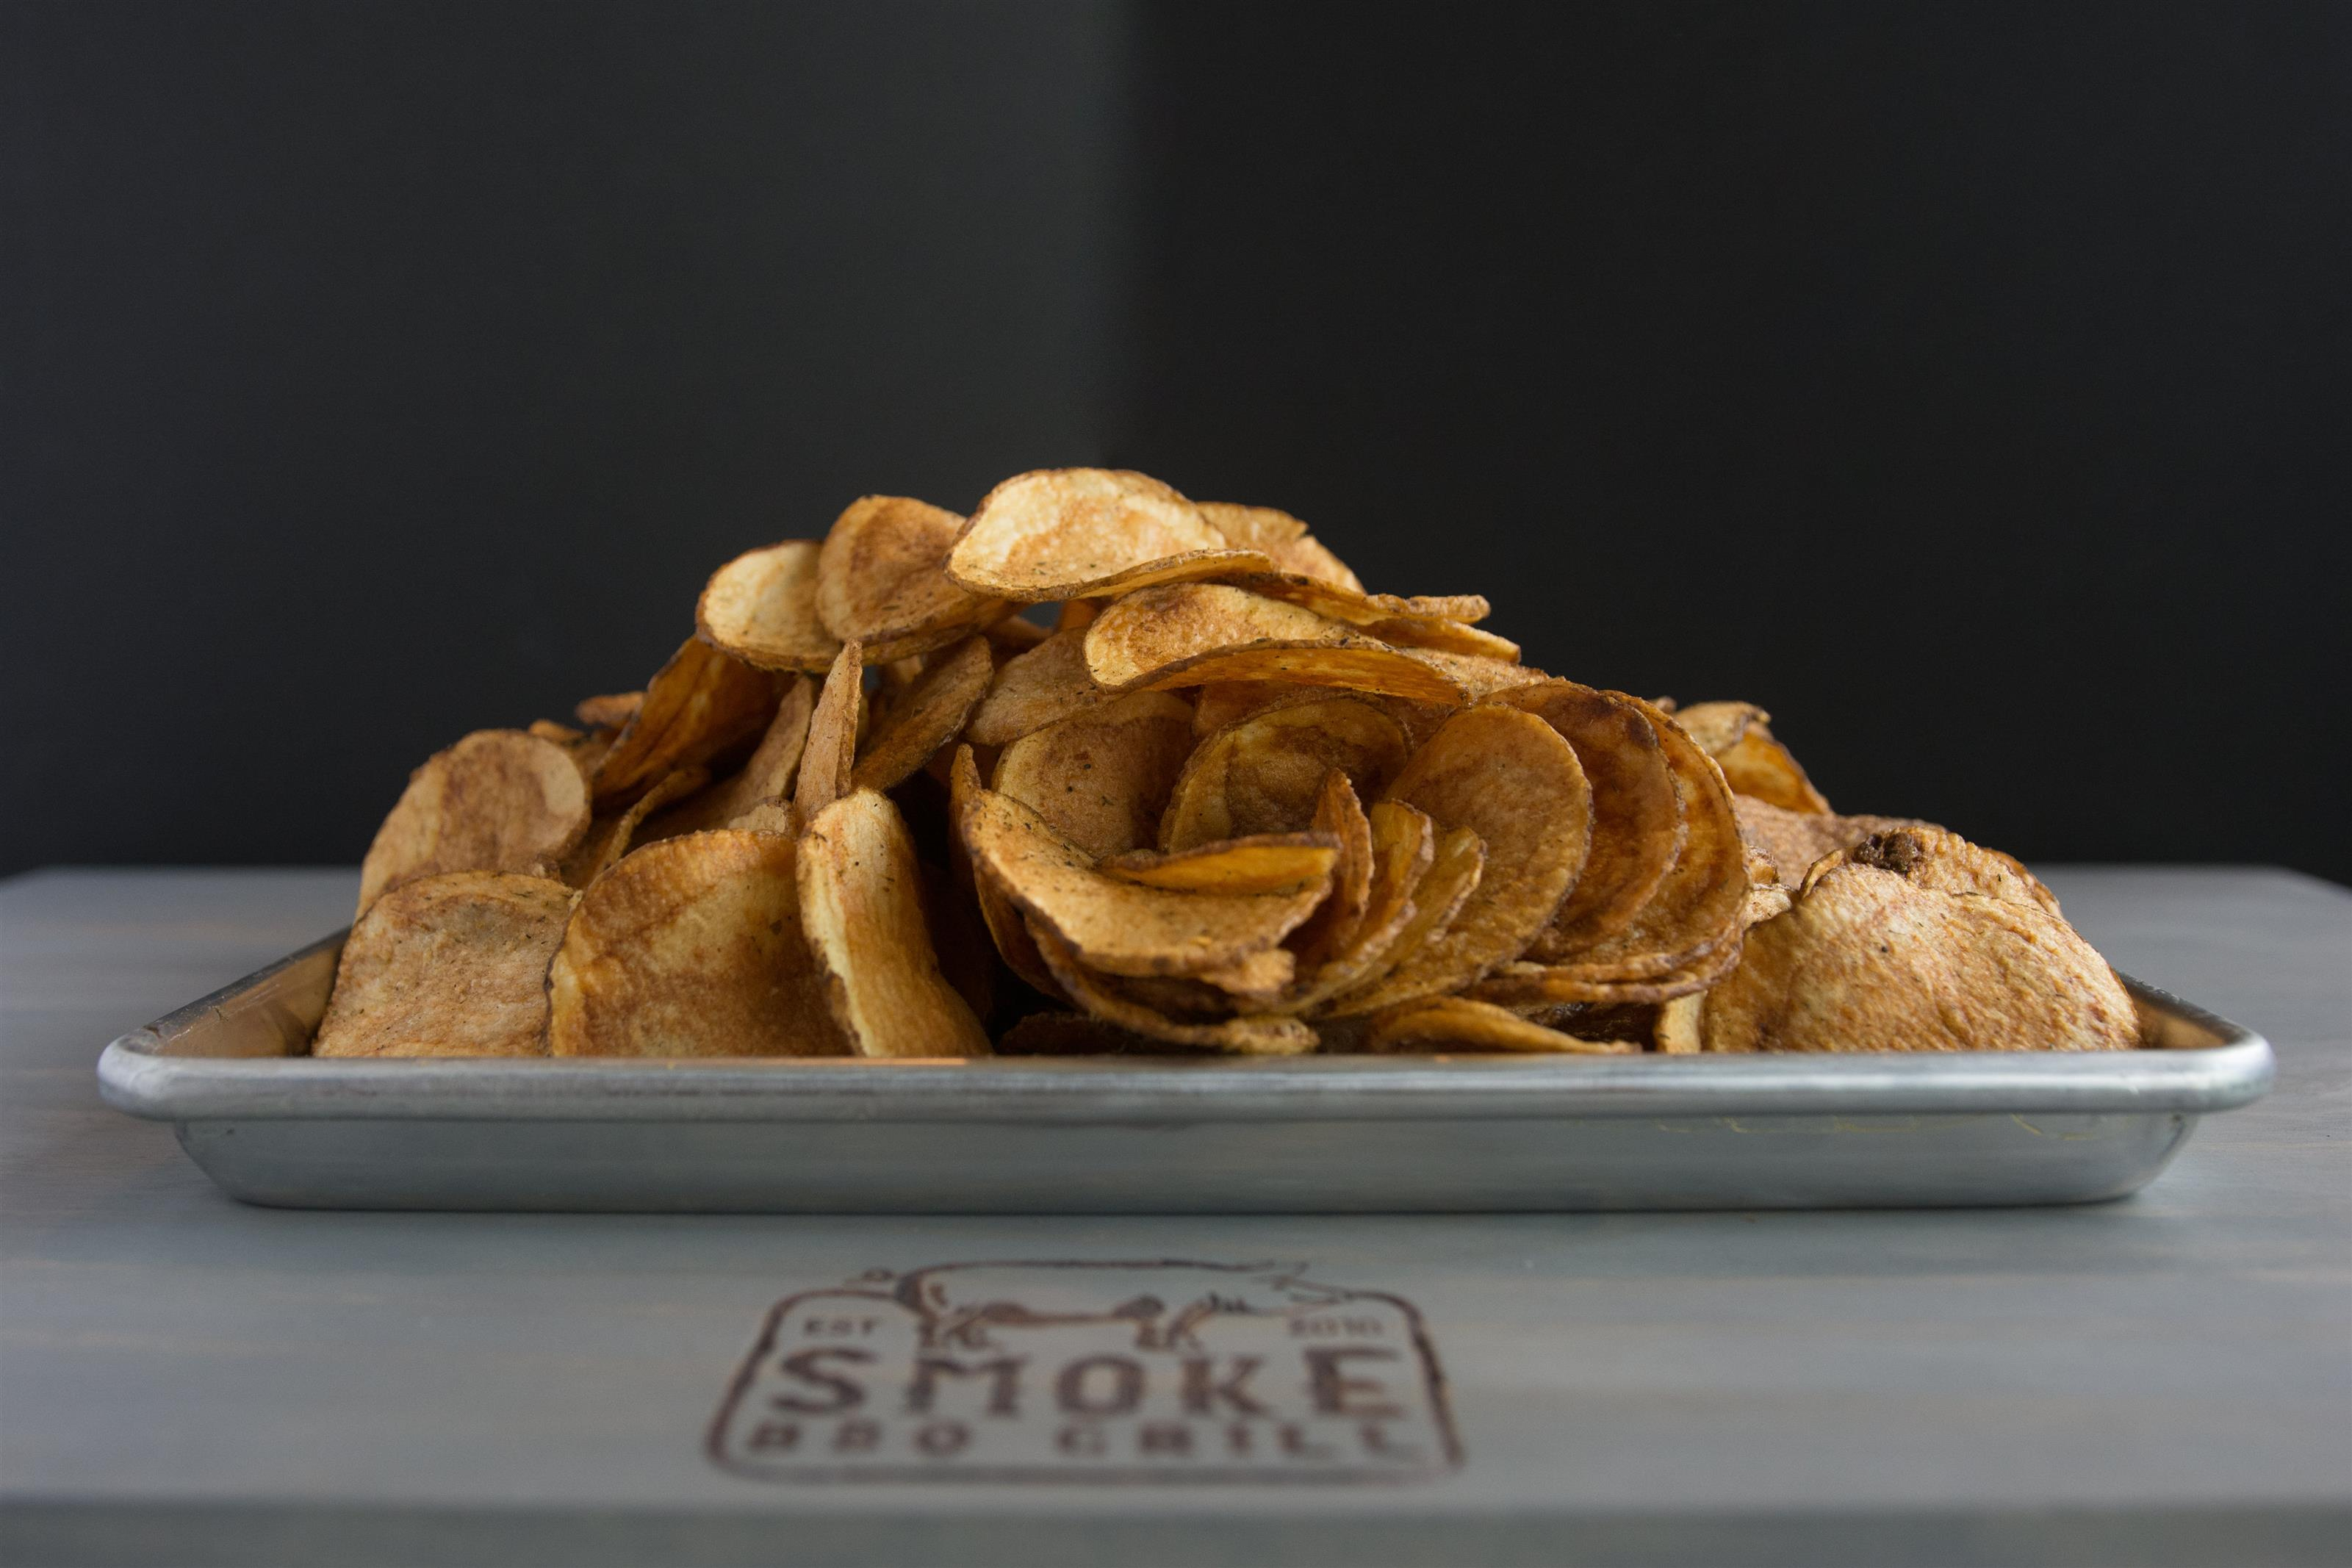 a platter of potato chips